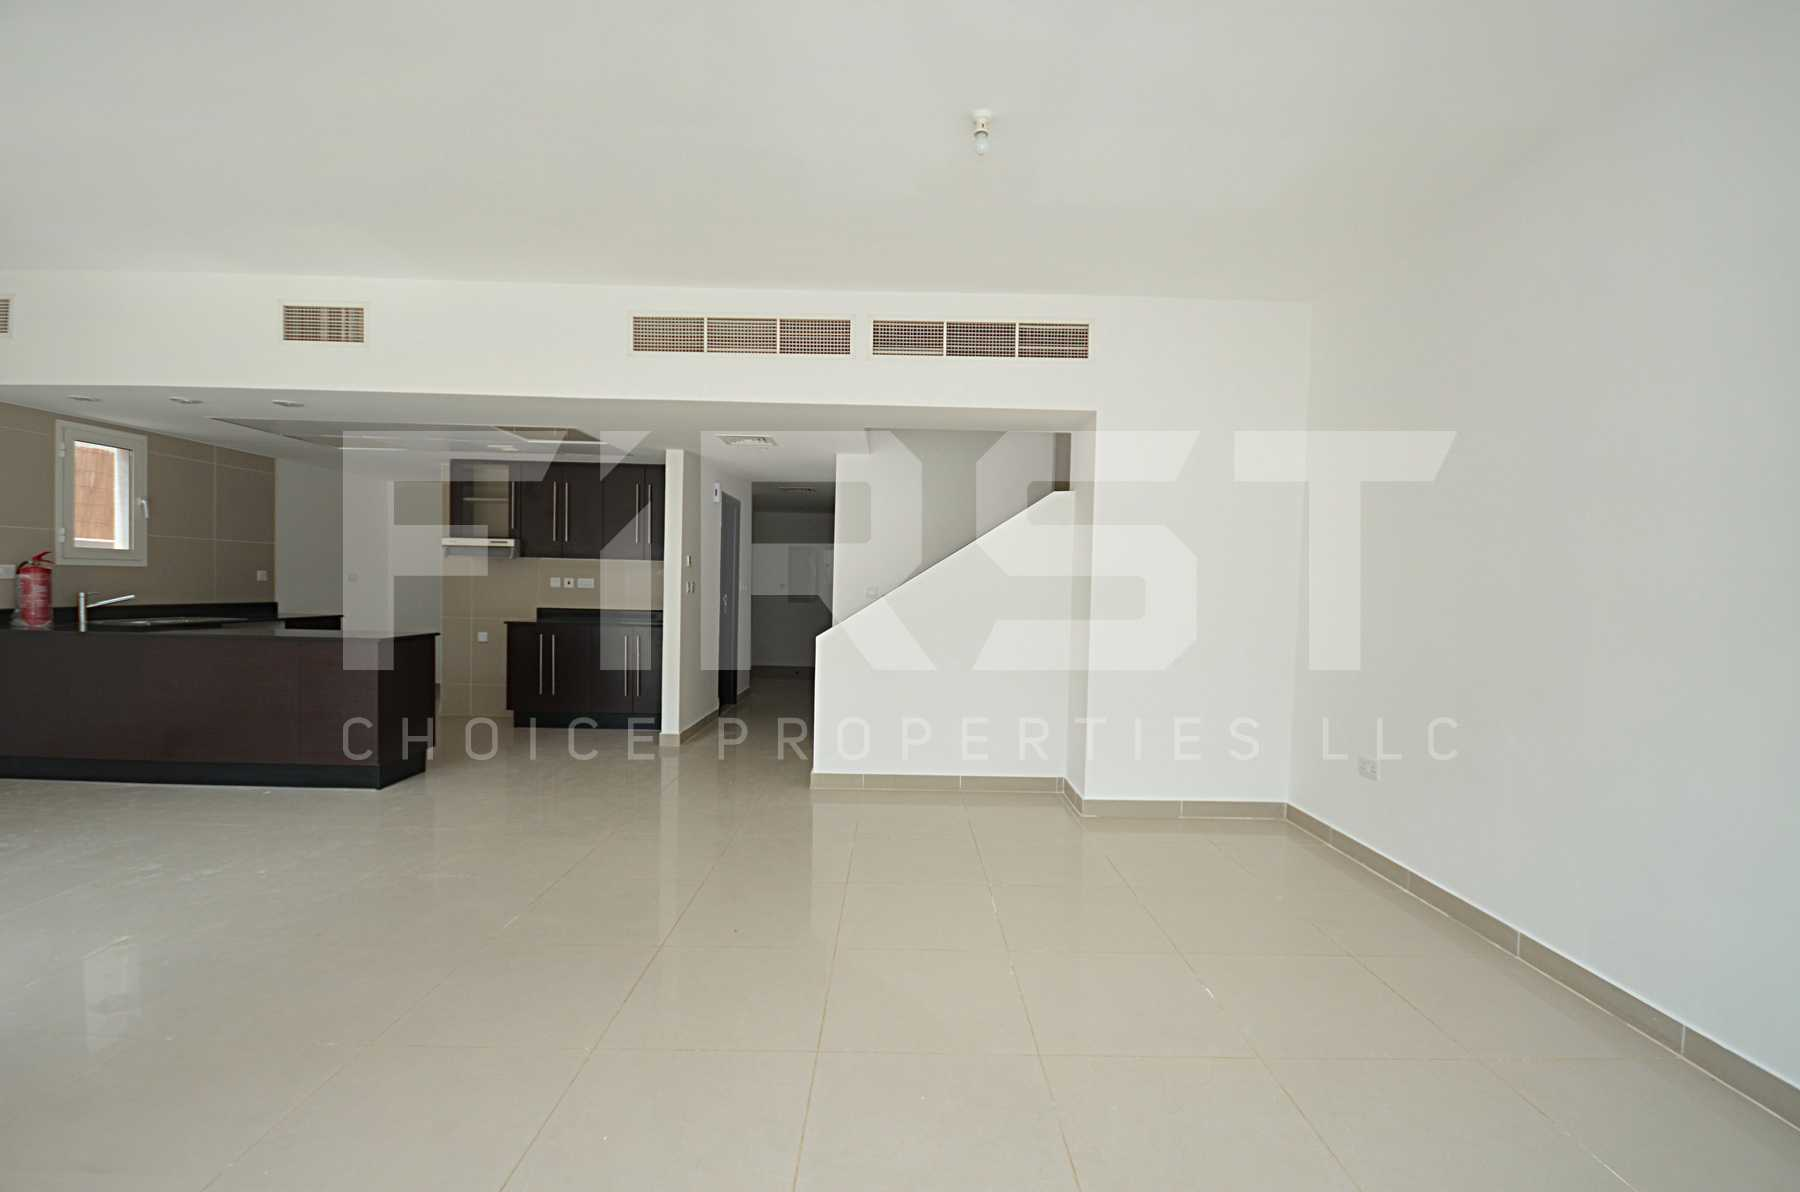 Internal Photo of 4 Bedroom Villa in Al Reef Villas Al Reef Abu Dhabi UAE 265.5 sq.m 2858 sq.ft (40).jpg